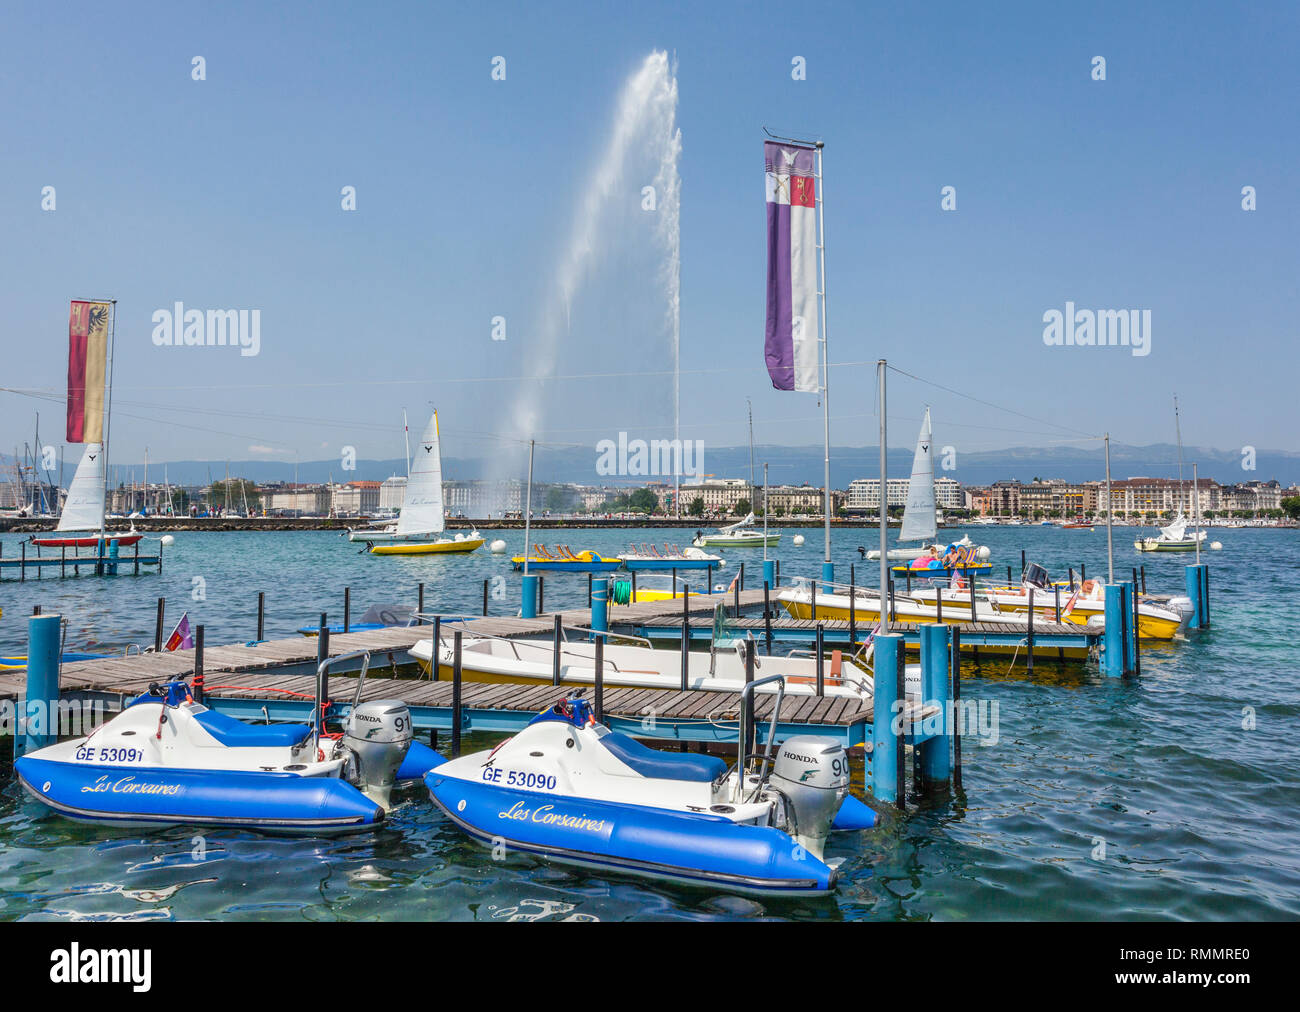 Switzerland, Lake Geneva, pedal boat hire at the Les Eaux-Vives waterfront with view of the Jet d'Eau fountain - Stock Image